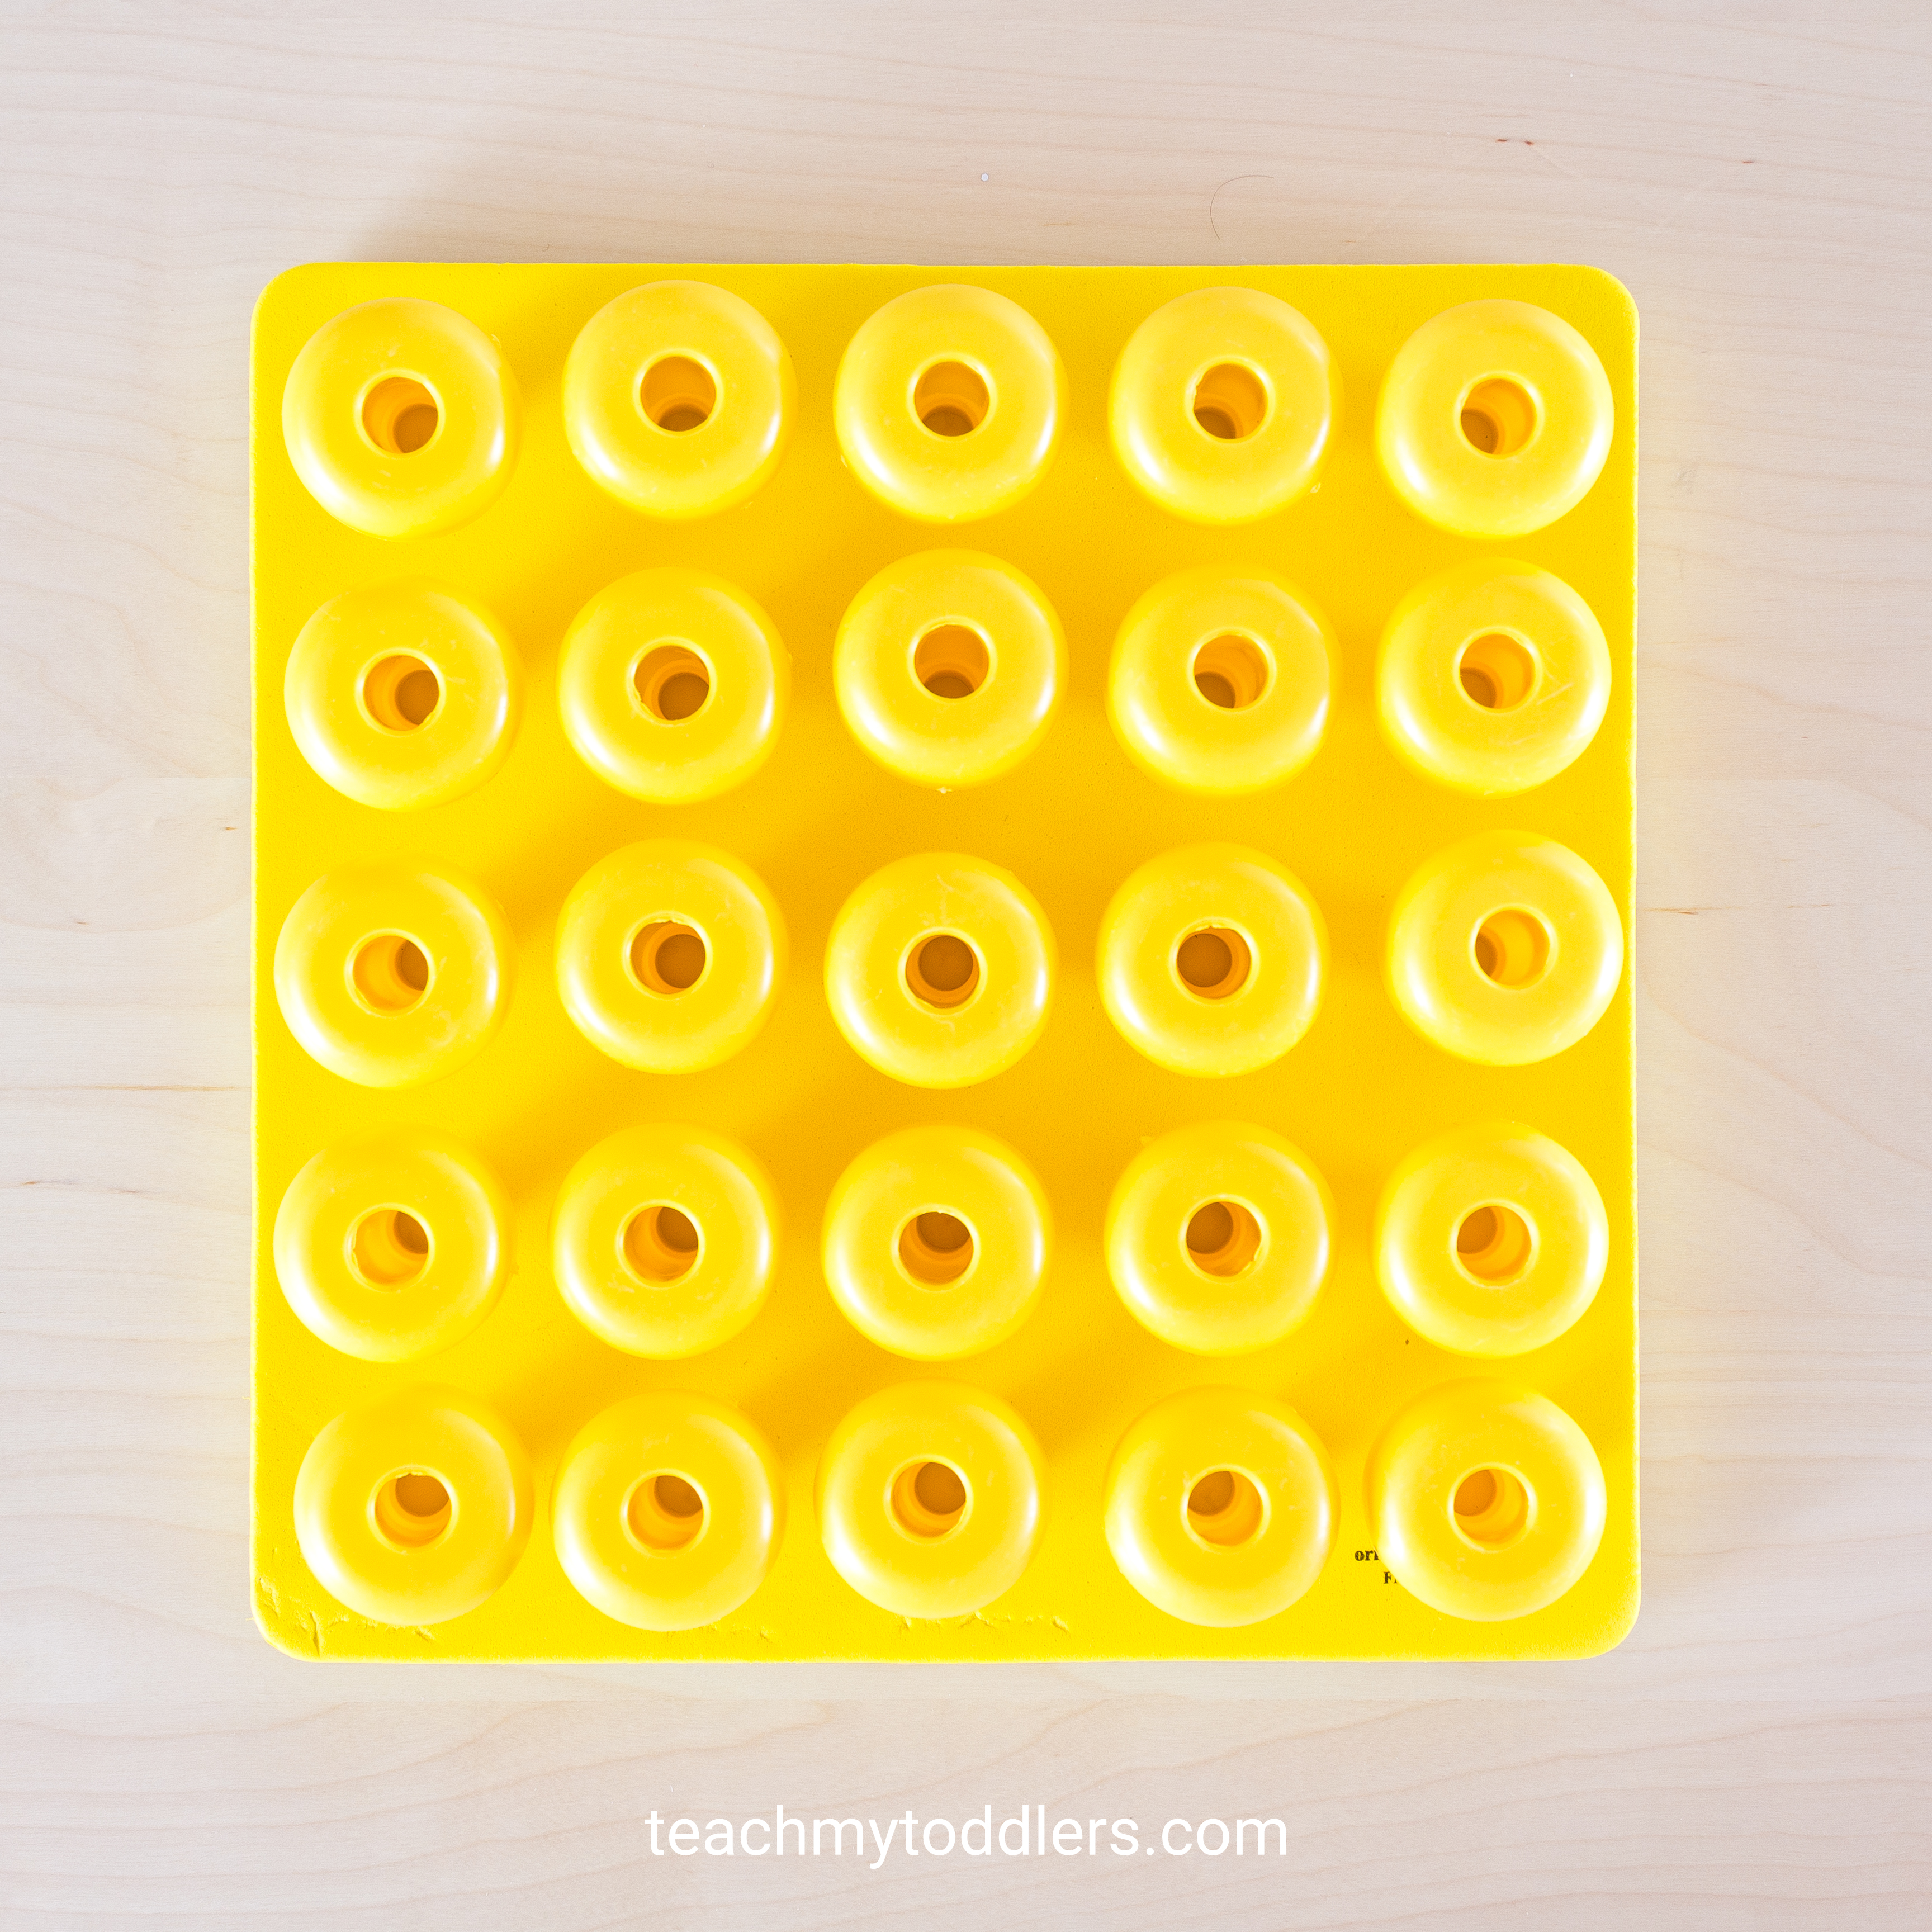 This yellow peg board can help your toddlers learn colors